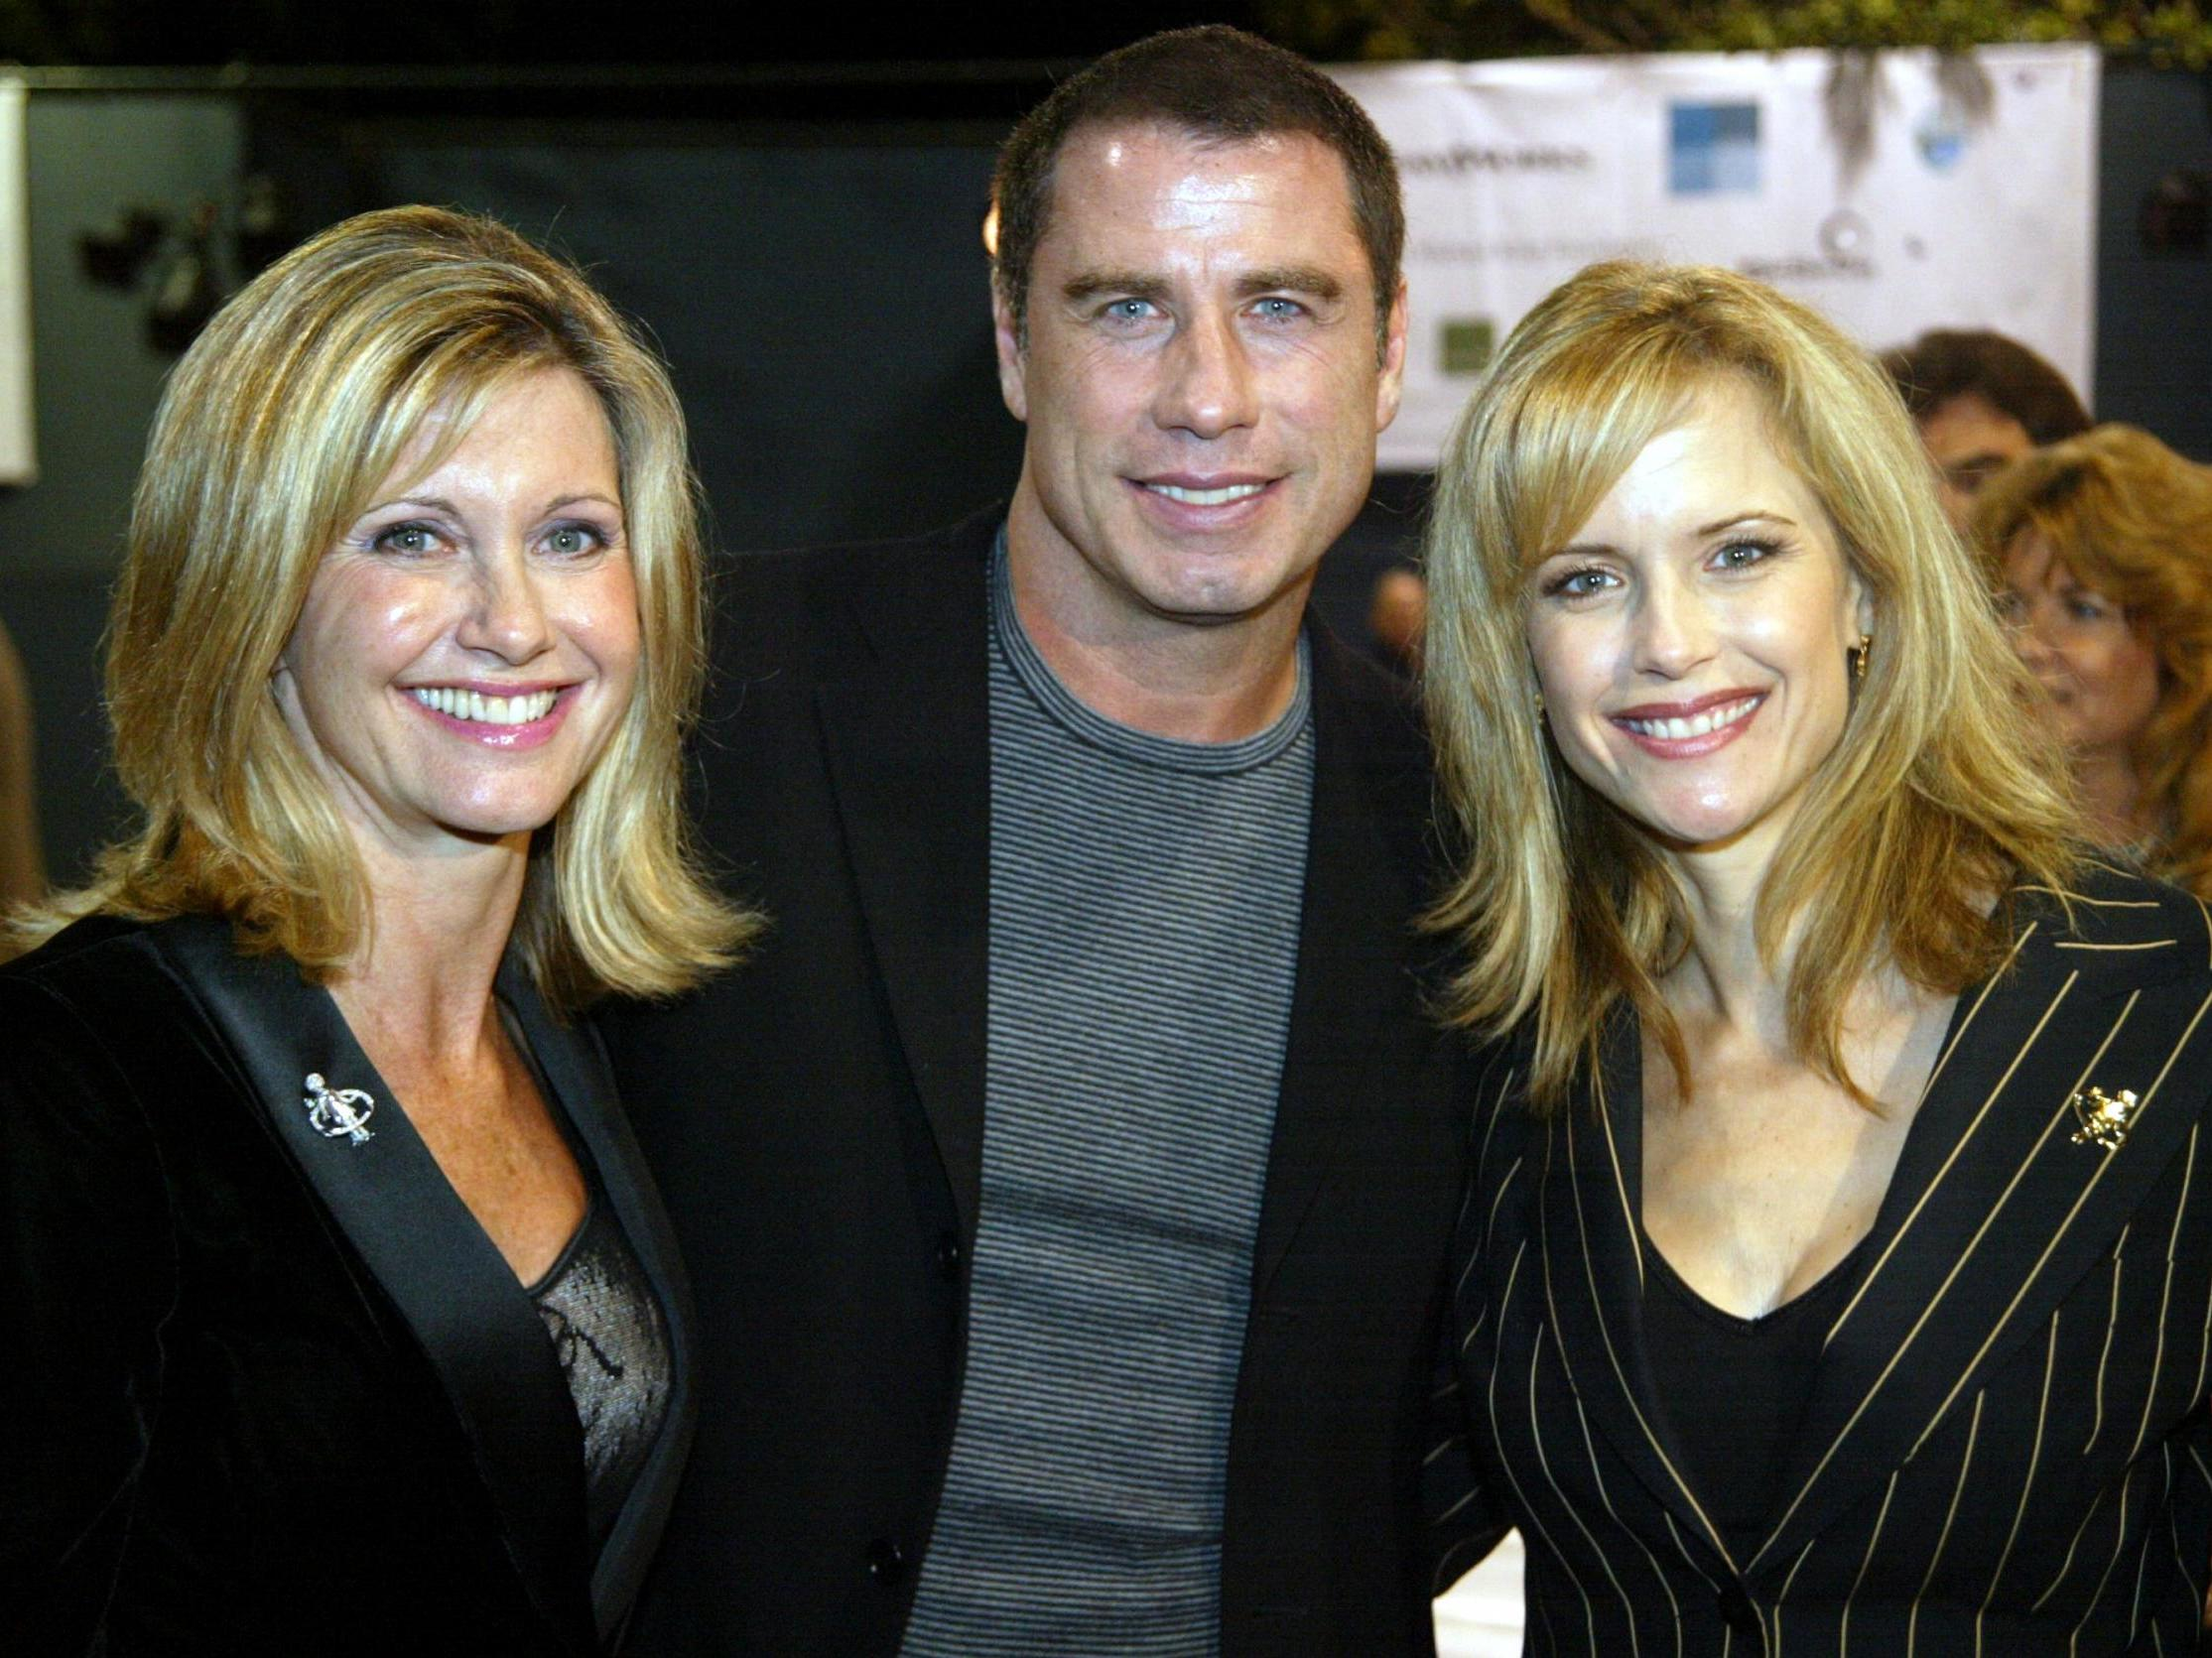 Olivia Newton John Pays Tribute To Kelly Preston And Says Her Heart Breaks For John Travolta The Independent The Independent